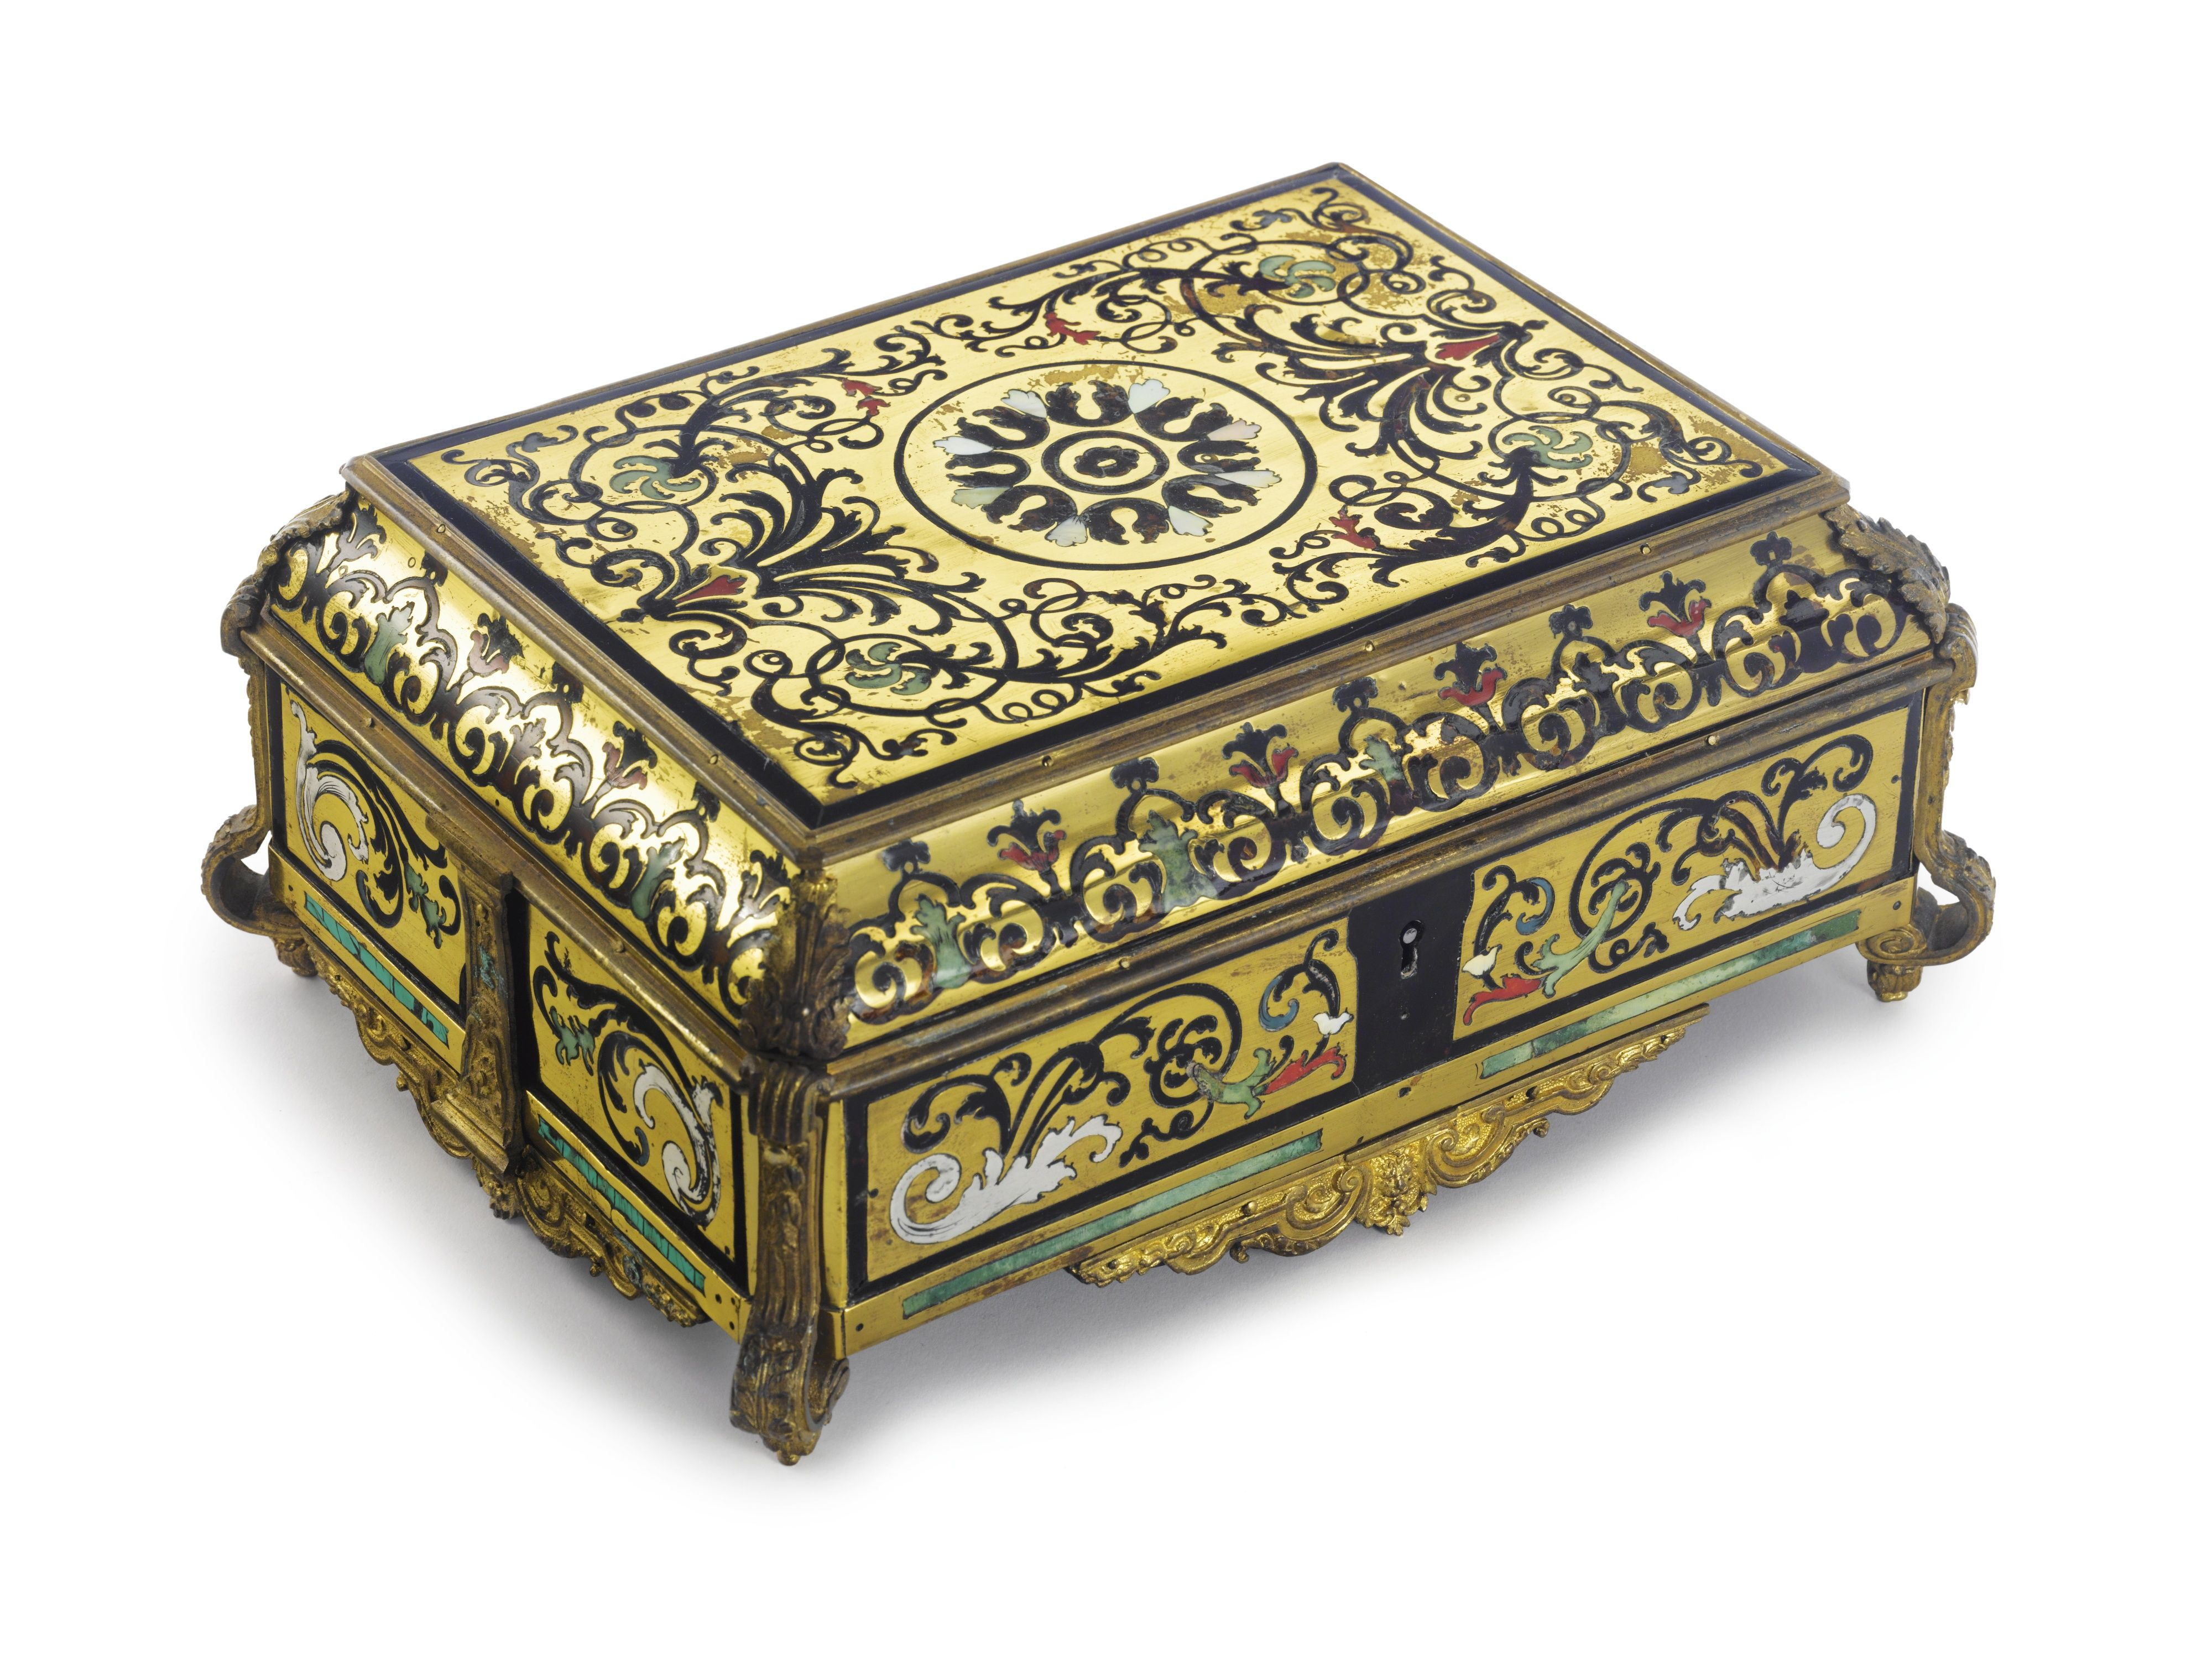 A LOUIS XIV ORMOLU-MOUNTED, BRASS, PEWTER, TORTOISESHELL, MOTHER-OF-PEARL AND TINTED HORN-INLAID BOX, circa 1710.